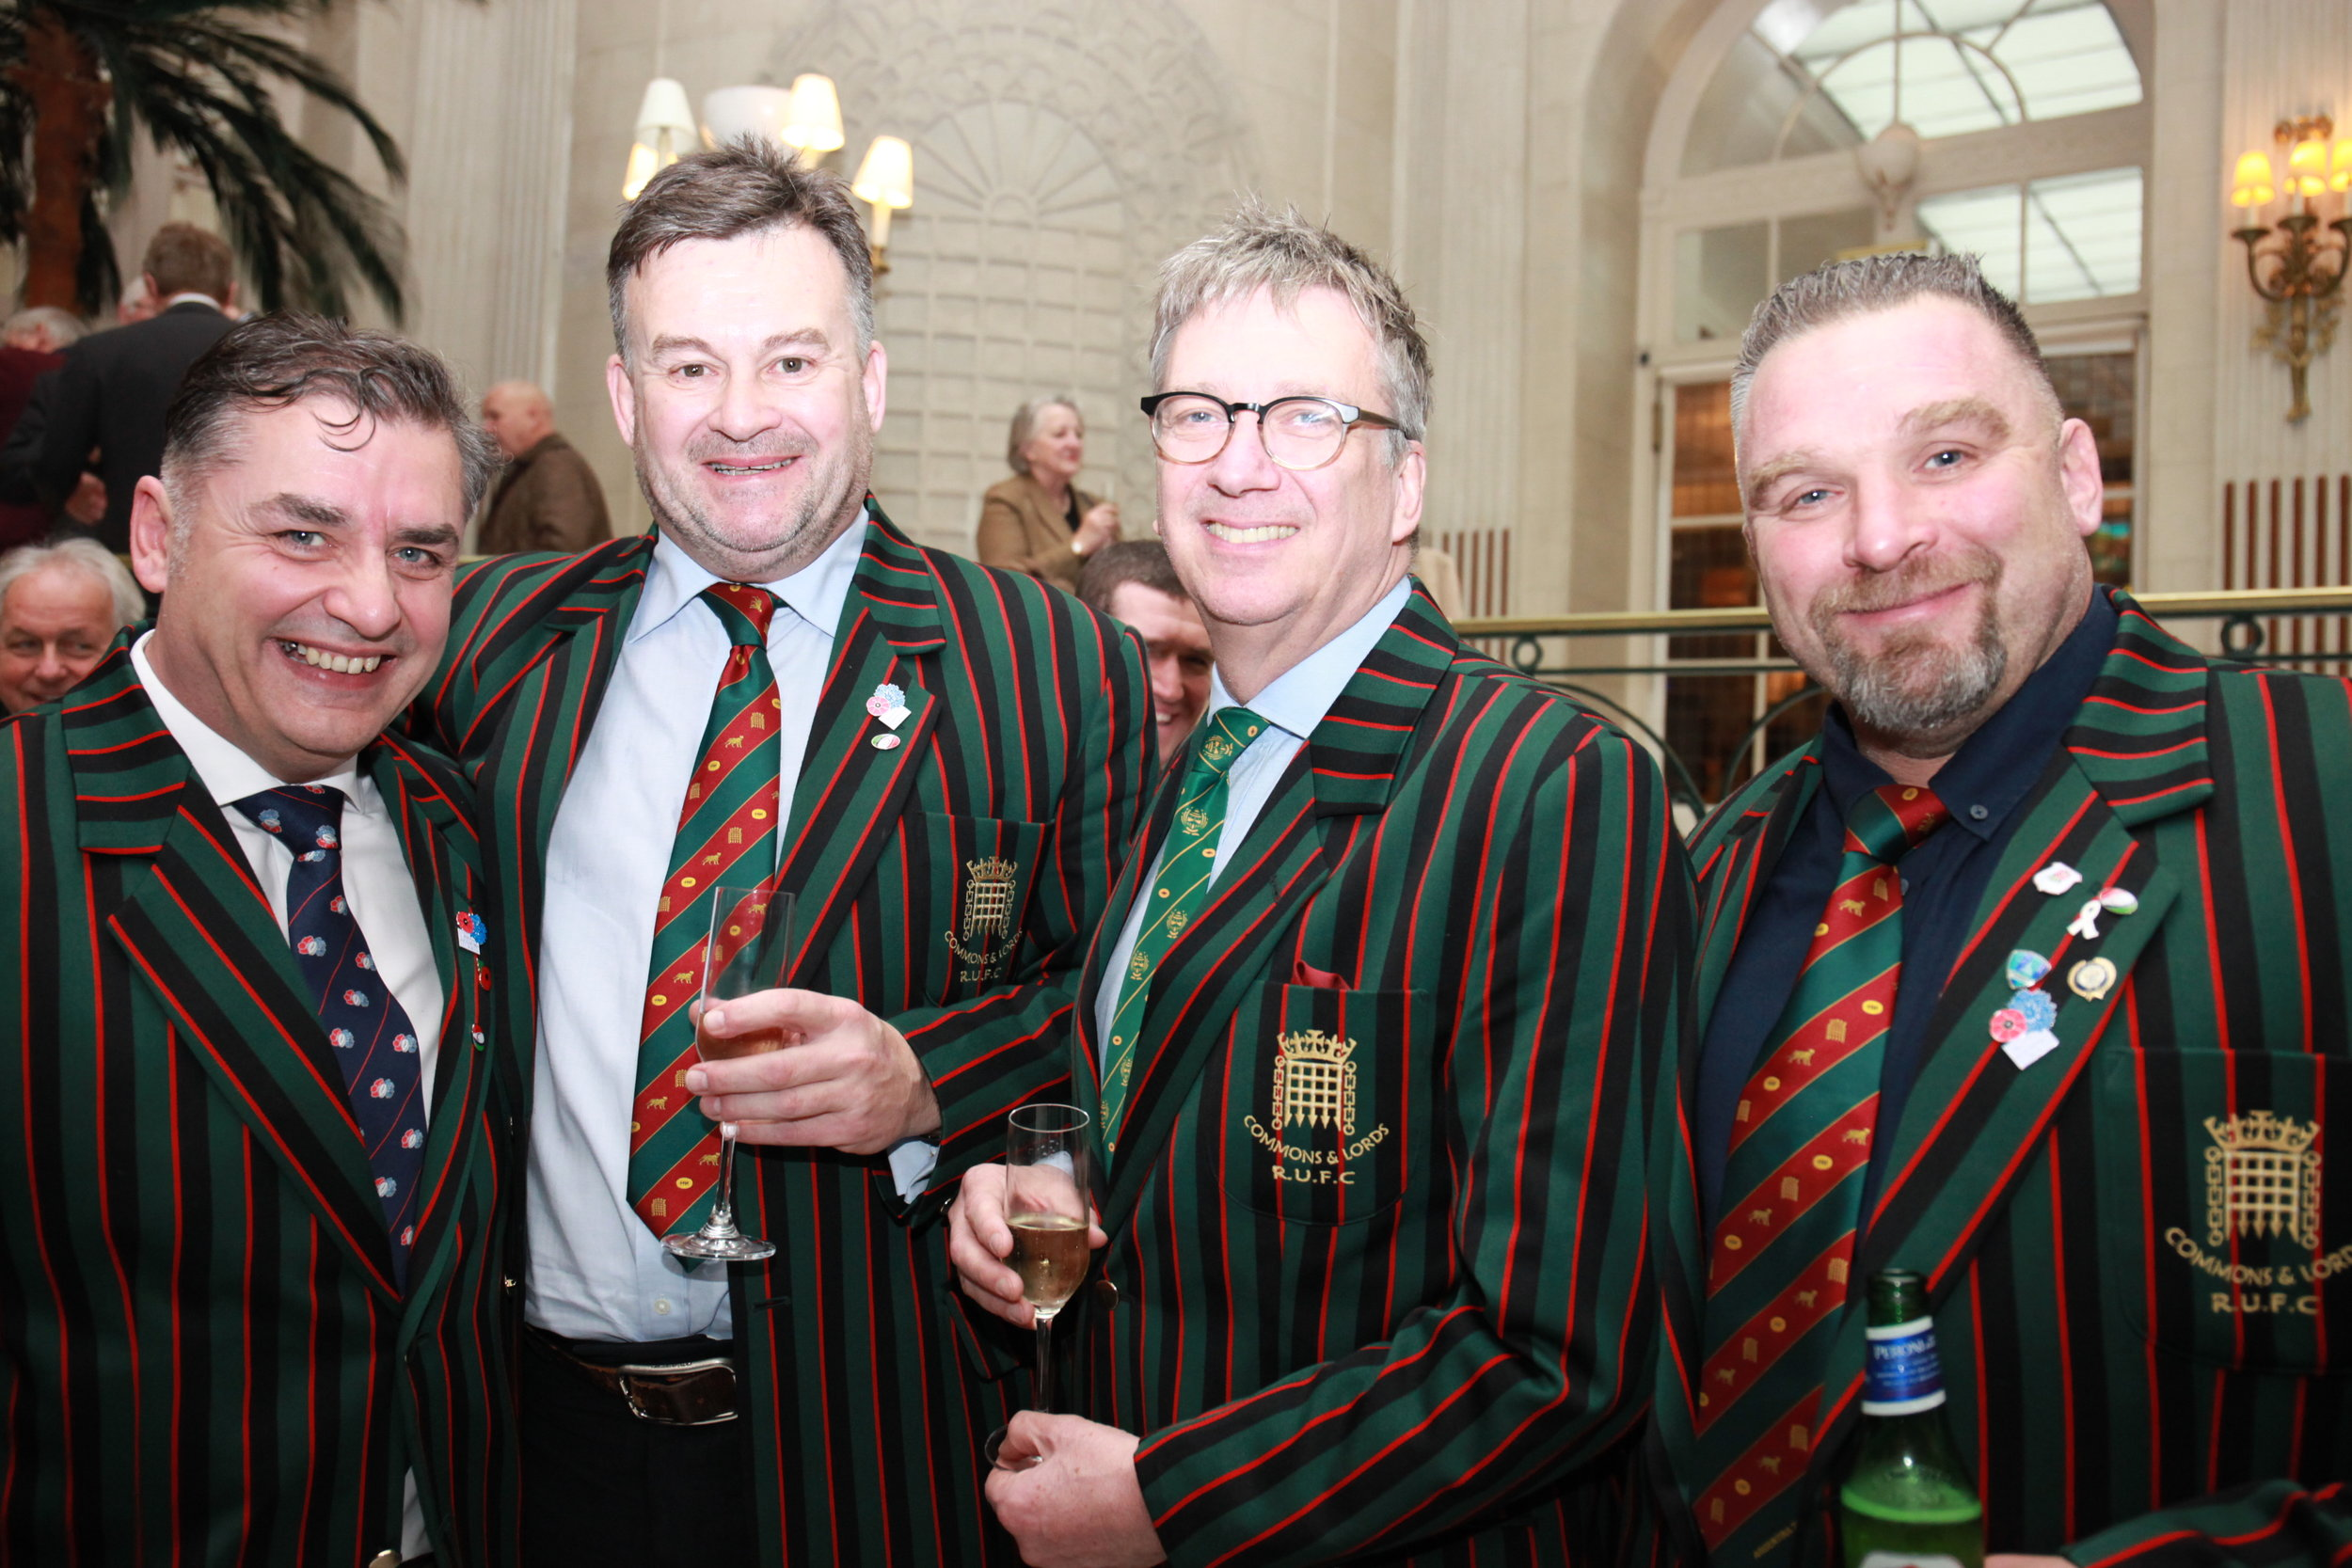 Liverymen Sean Eley and Robert Booth with friends